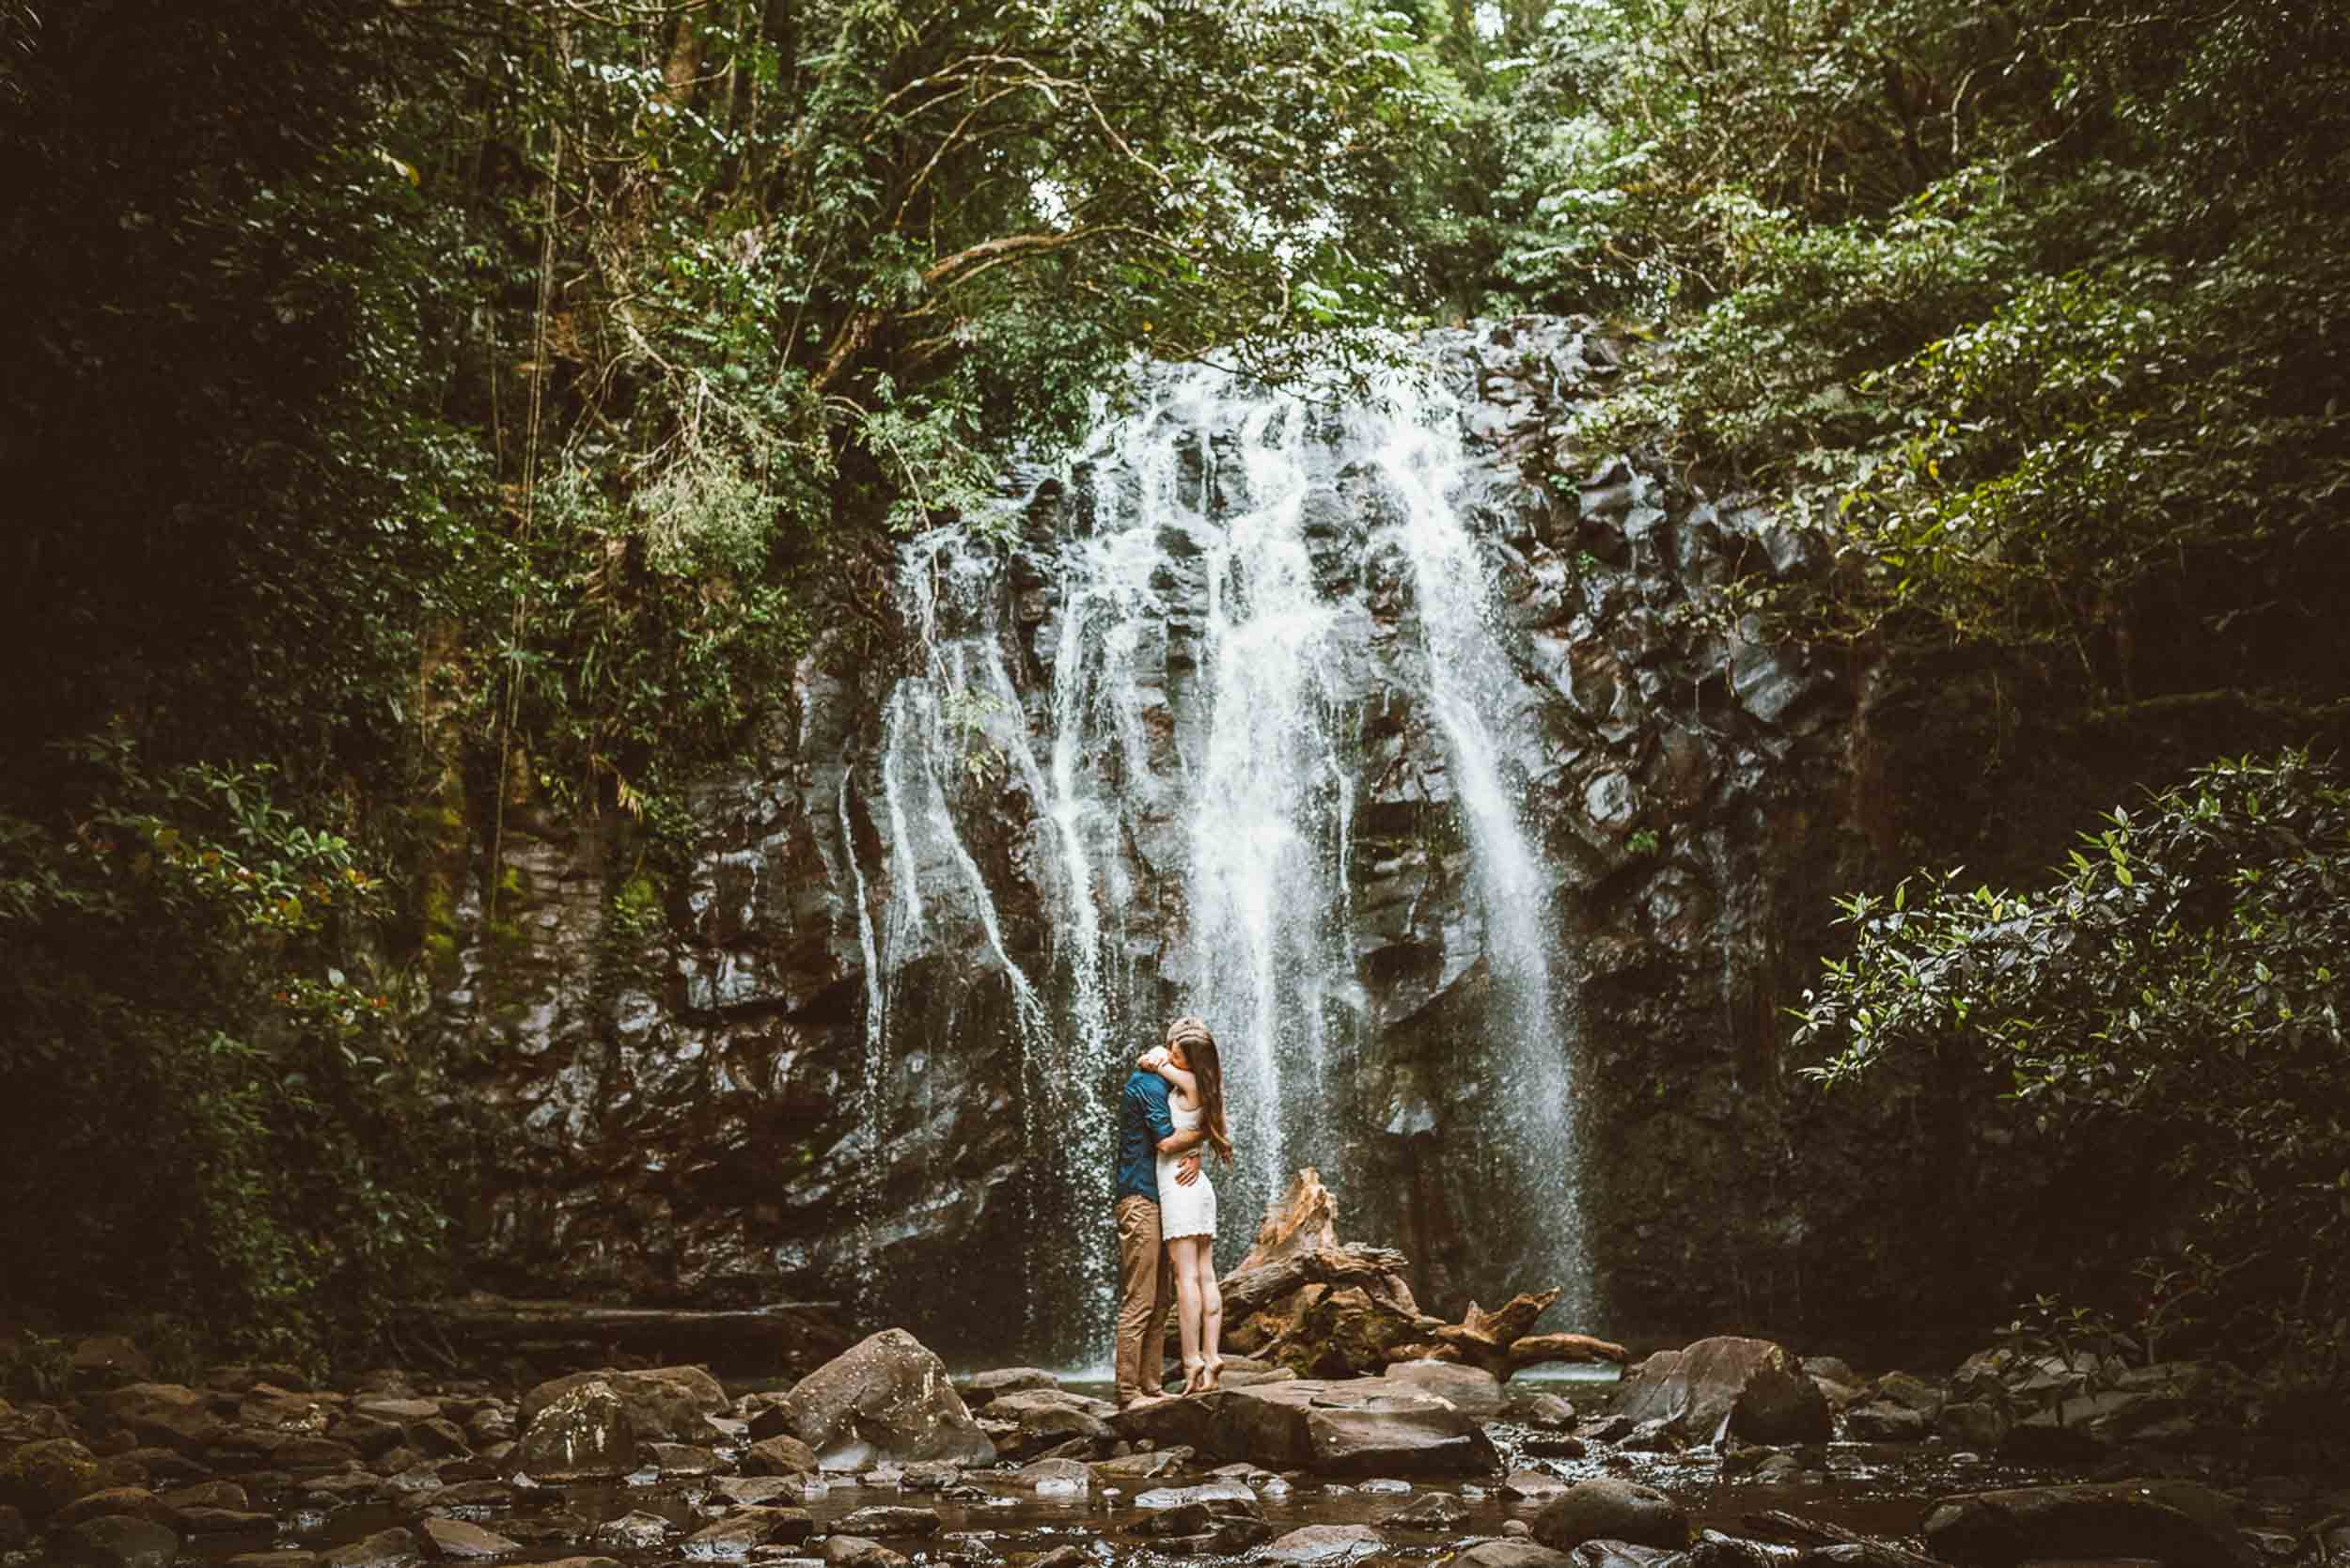 The Raw Photographer - Wedding Photographer - Tablelands Mareeba Atherton Engagement- Couple Session Photos in Cairns - Engaged Price - Rainforest Waterfall Queensland - photoshoot-17.jpg